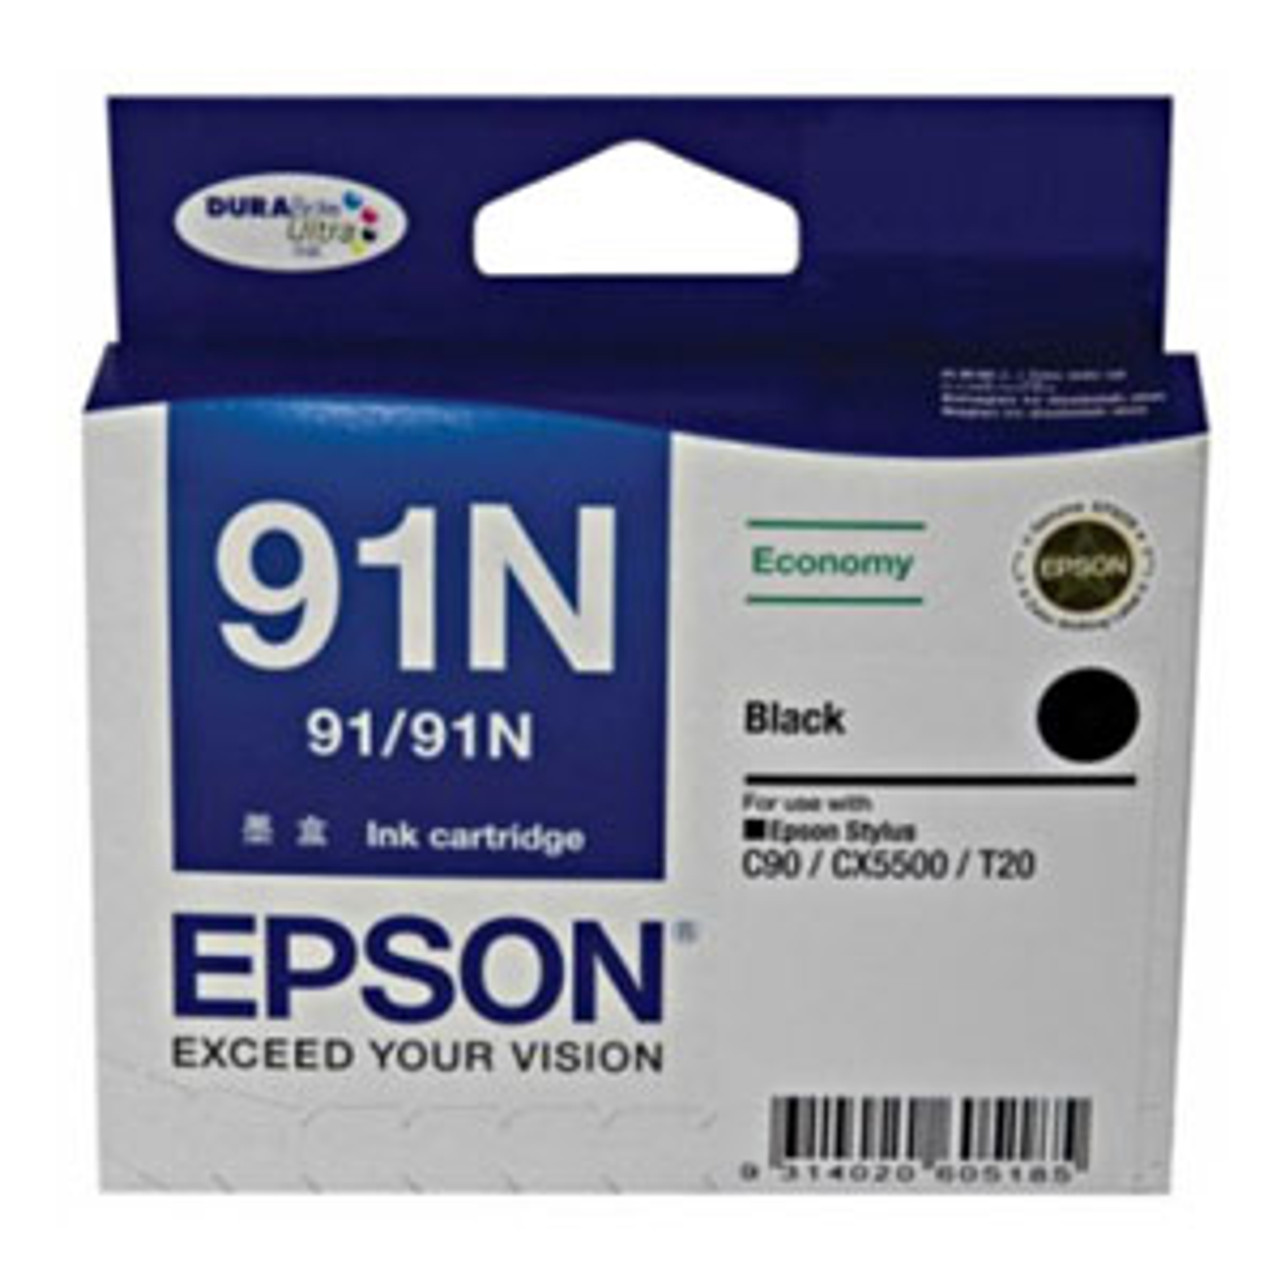 Image for Epson 91N Black Ink Cart 180 pages Black CX Computer Superstore